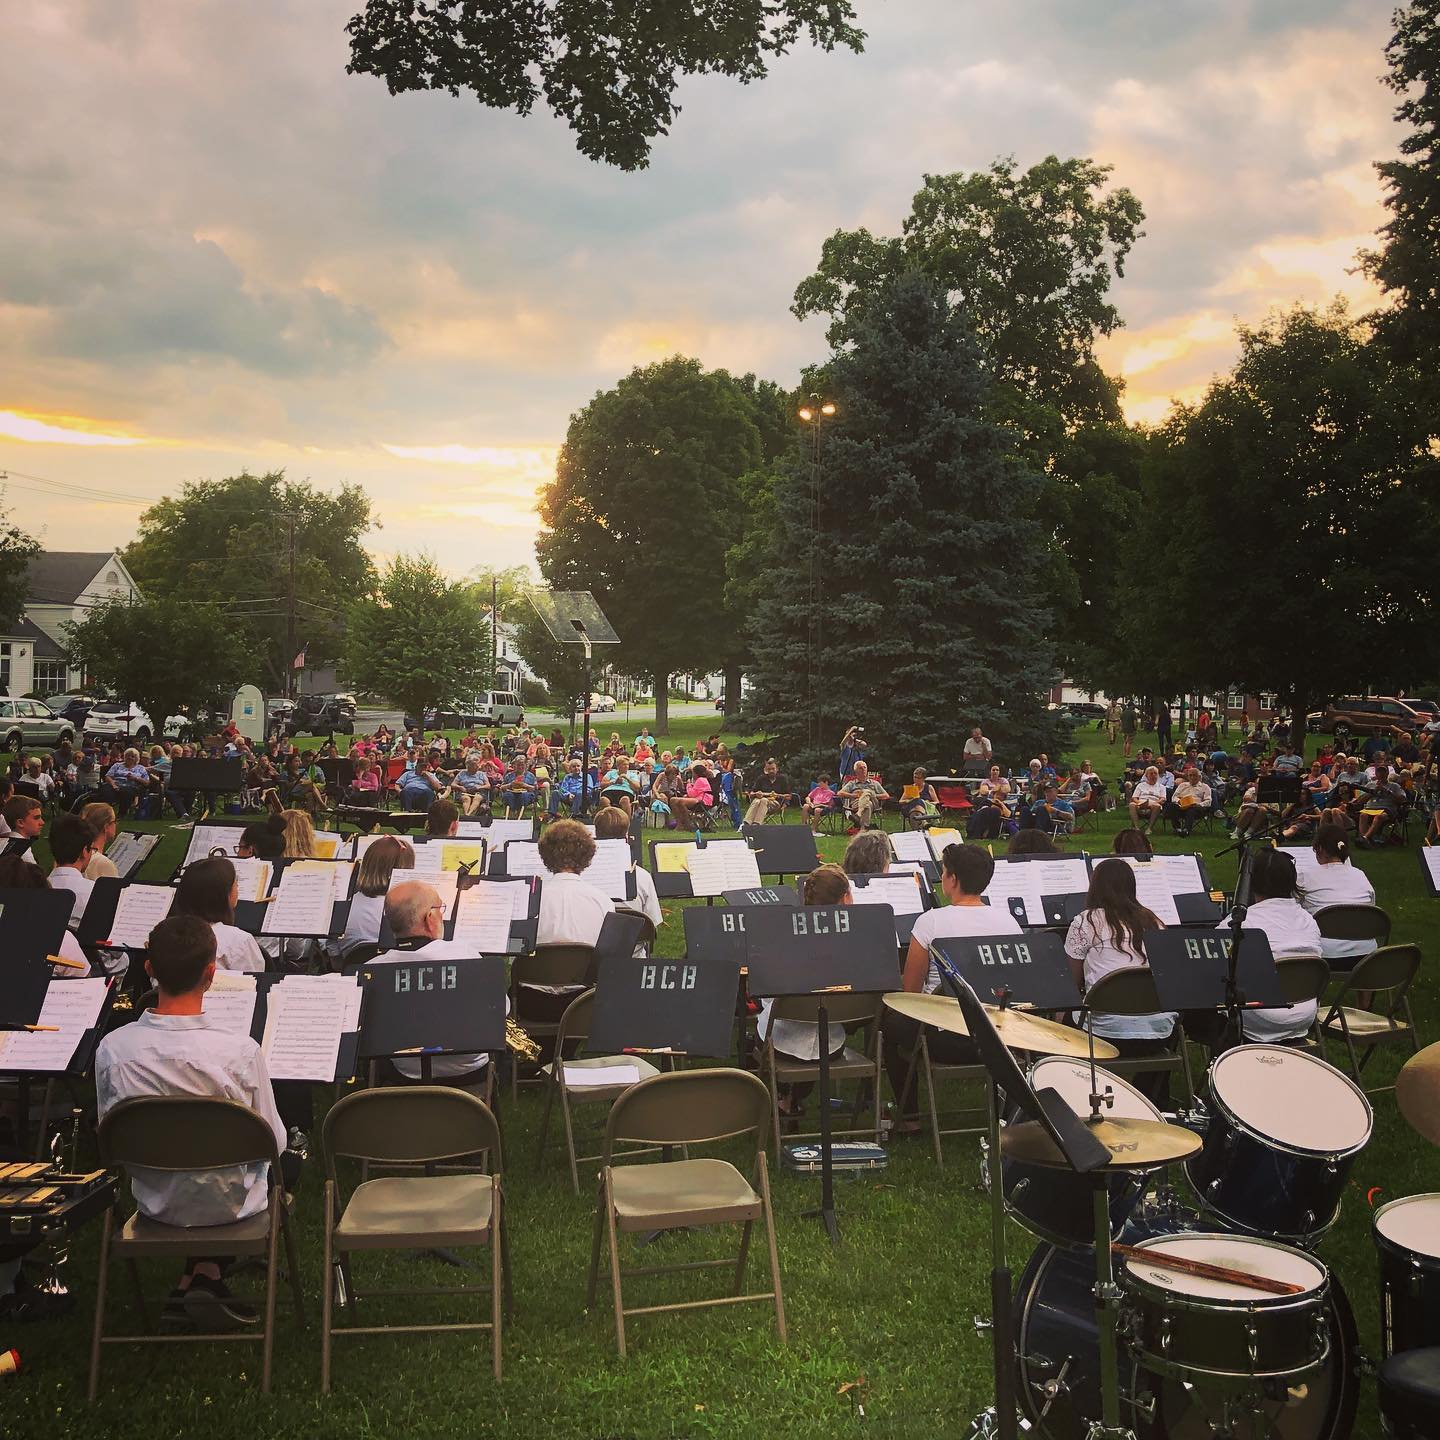 Sunset at Belchertown Community Band concert